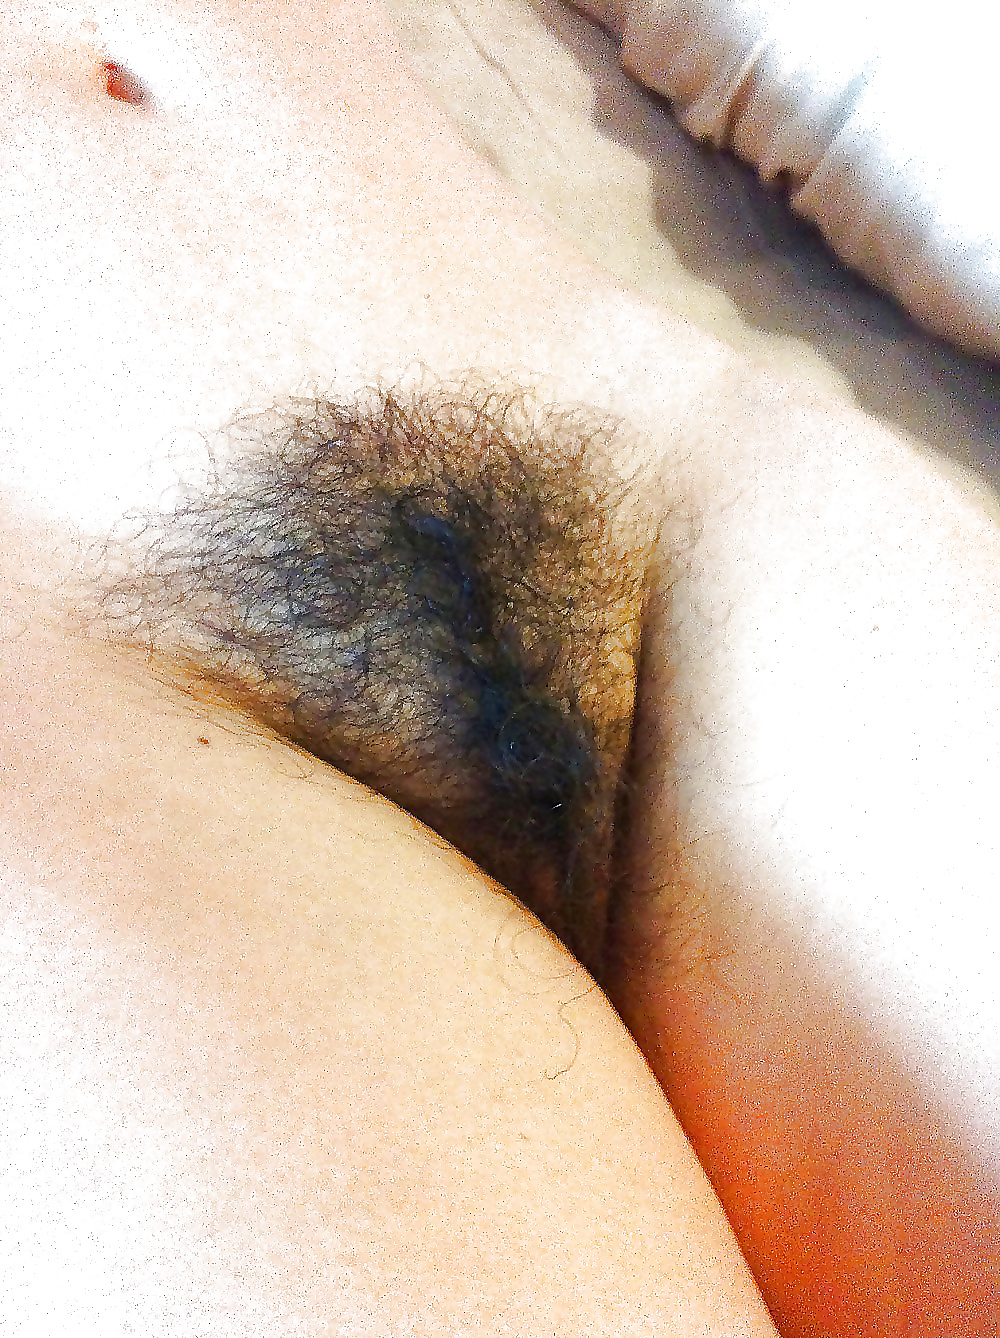 buy-pussy-hair-home-naked-gifs